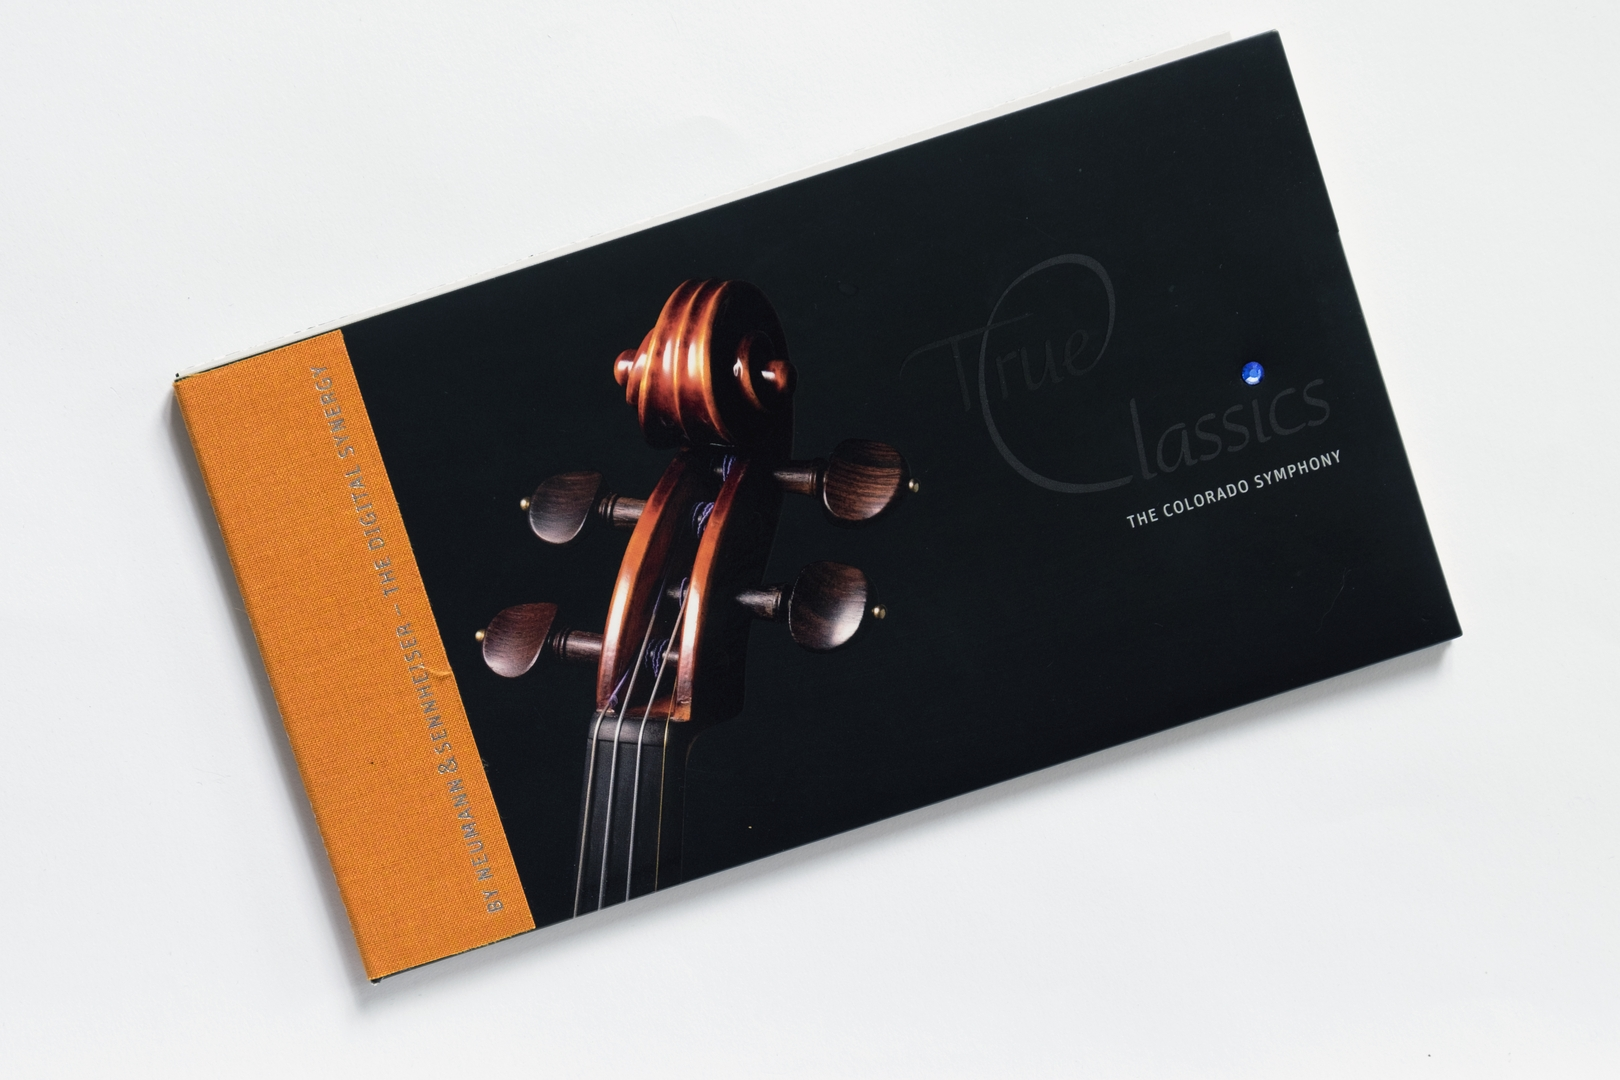 True Classics by the Colorado Symphony recorded by Neumann and Sennheiser – The Digital Synergy